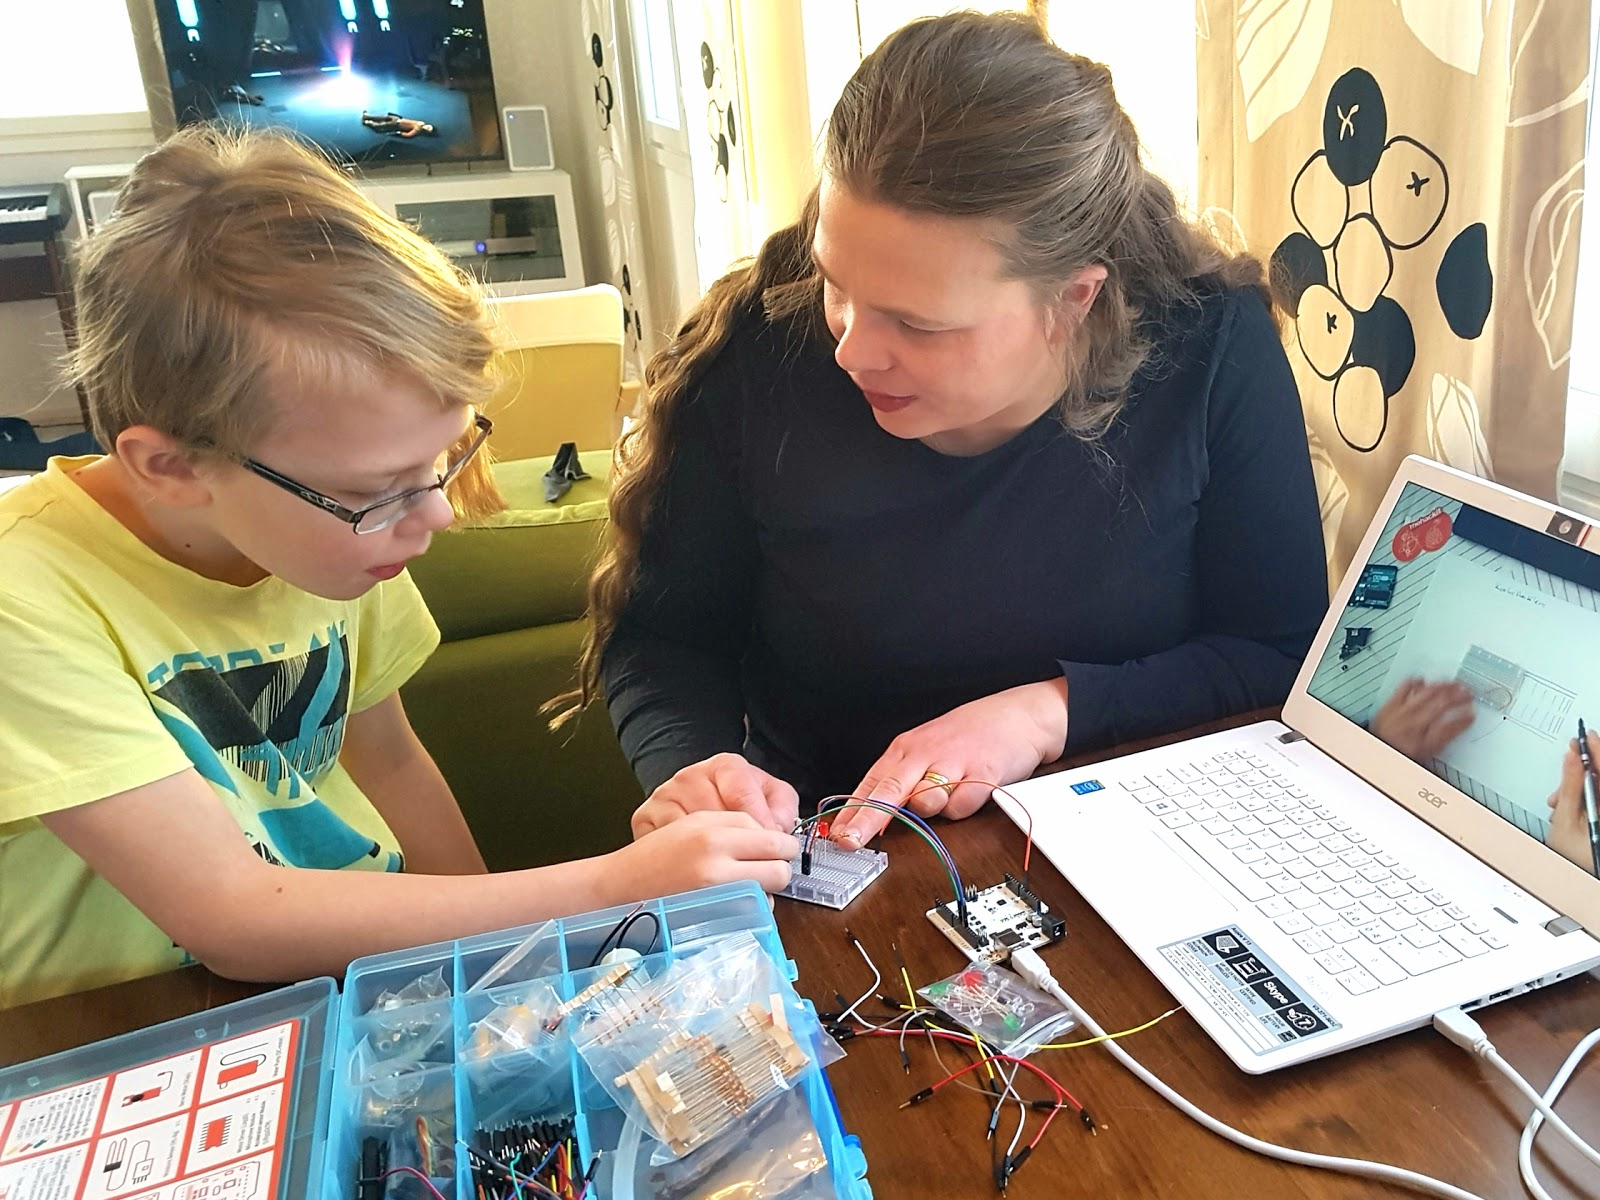 Kaisa and her son, Otso, exploring Mehackit Maker kit.